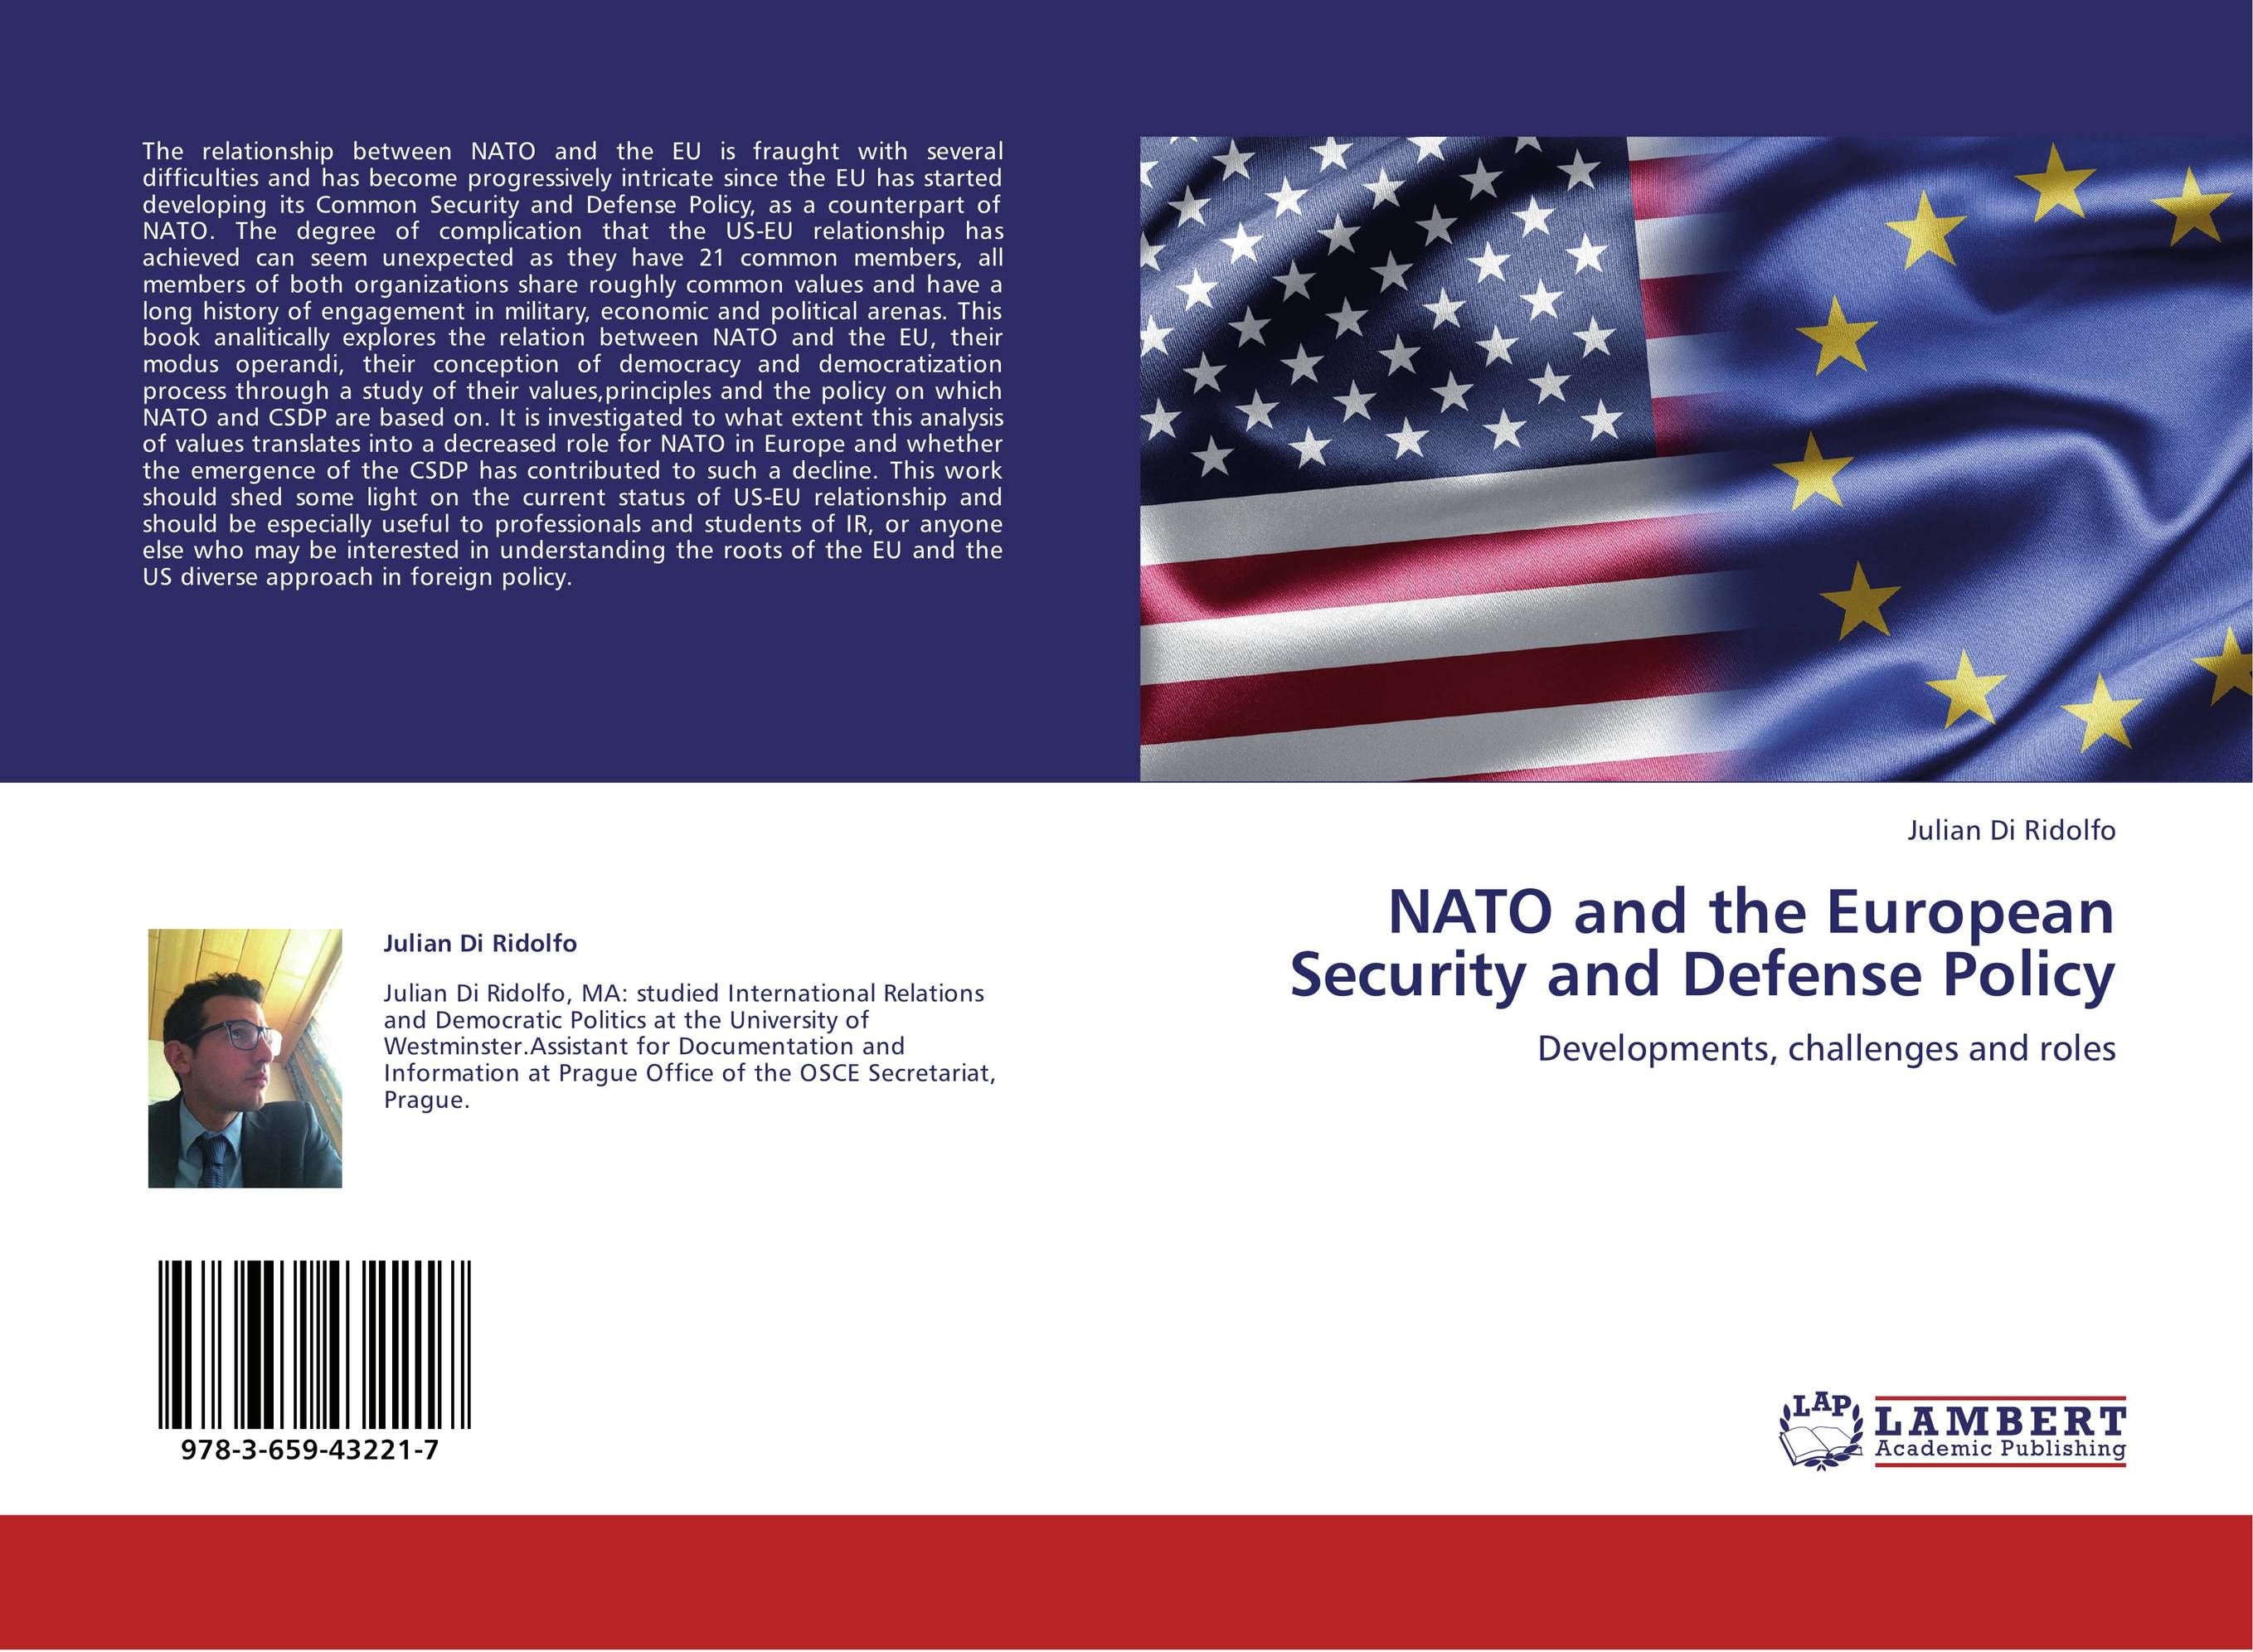 critique of the eus security defence policy Published: wed, 28 feb 2018 chapter i the history and development of the common security and defence policy since its beginnings with the european coal and steel community in 1952, the european union has moved far beyond economic ideas of a single market, a single currency or the removal of all trade barriers.